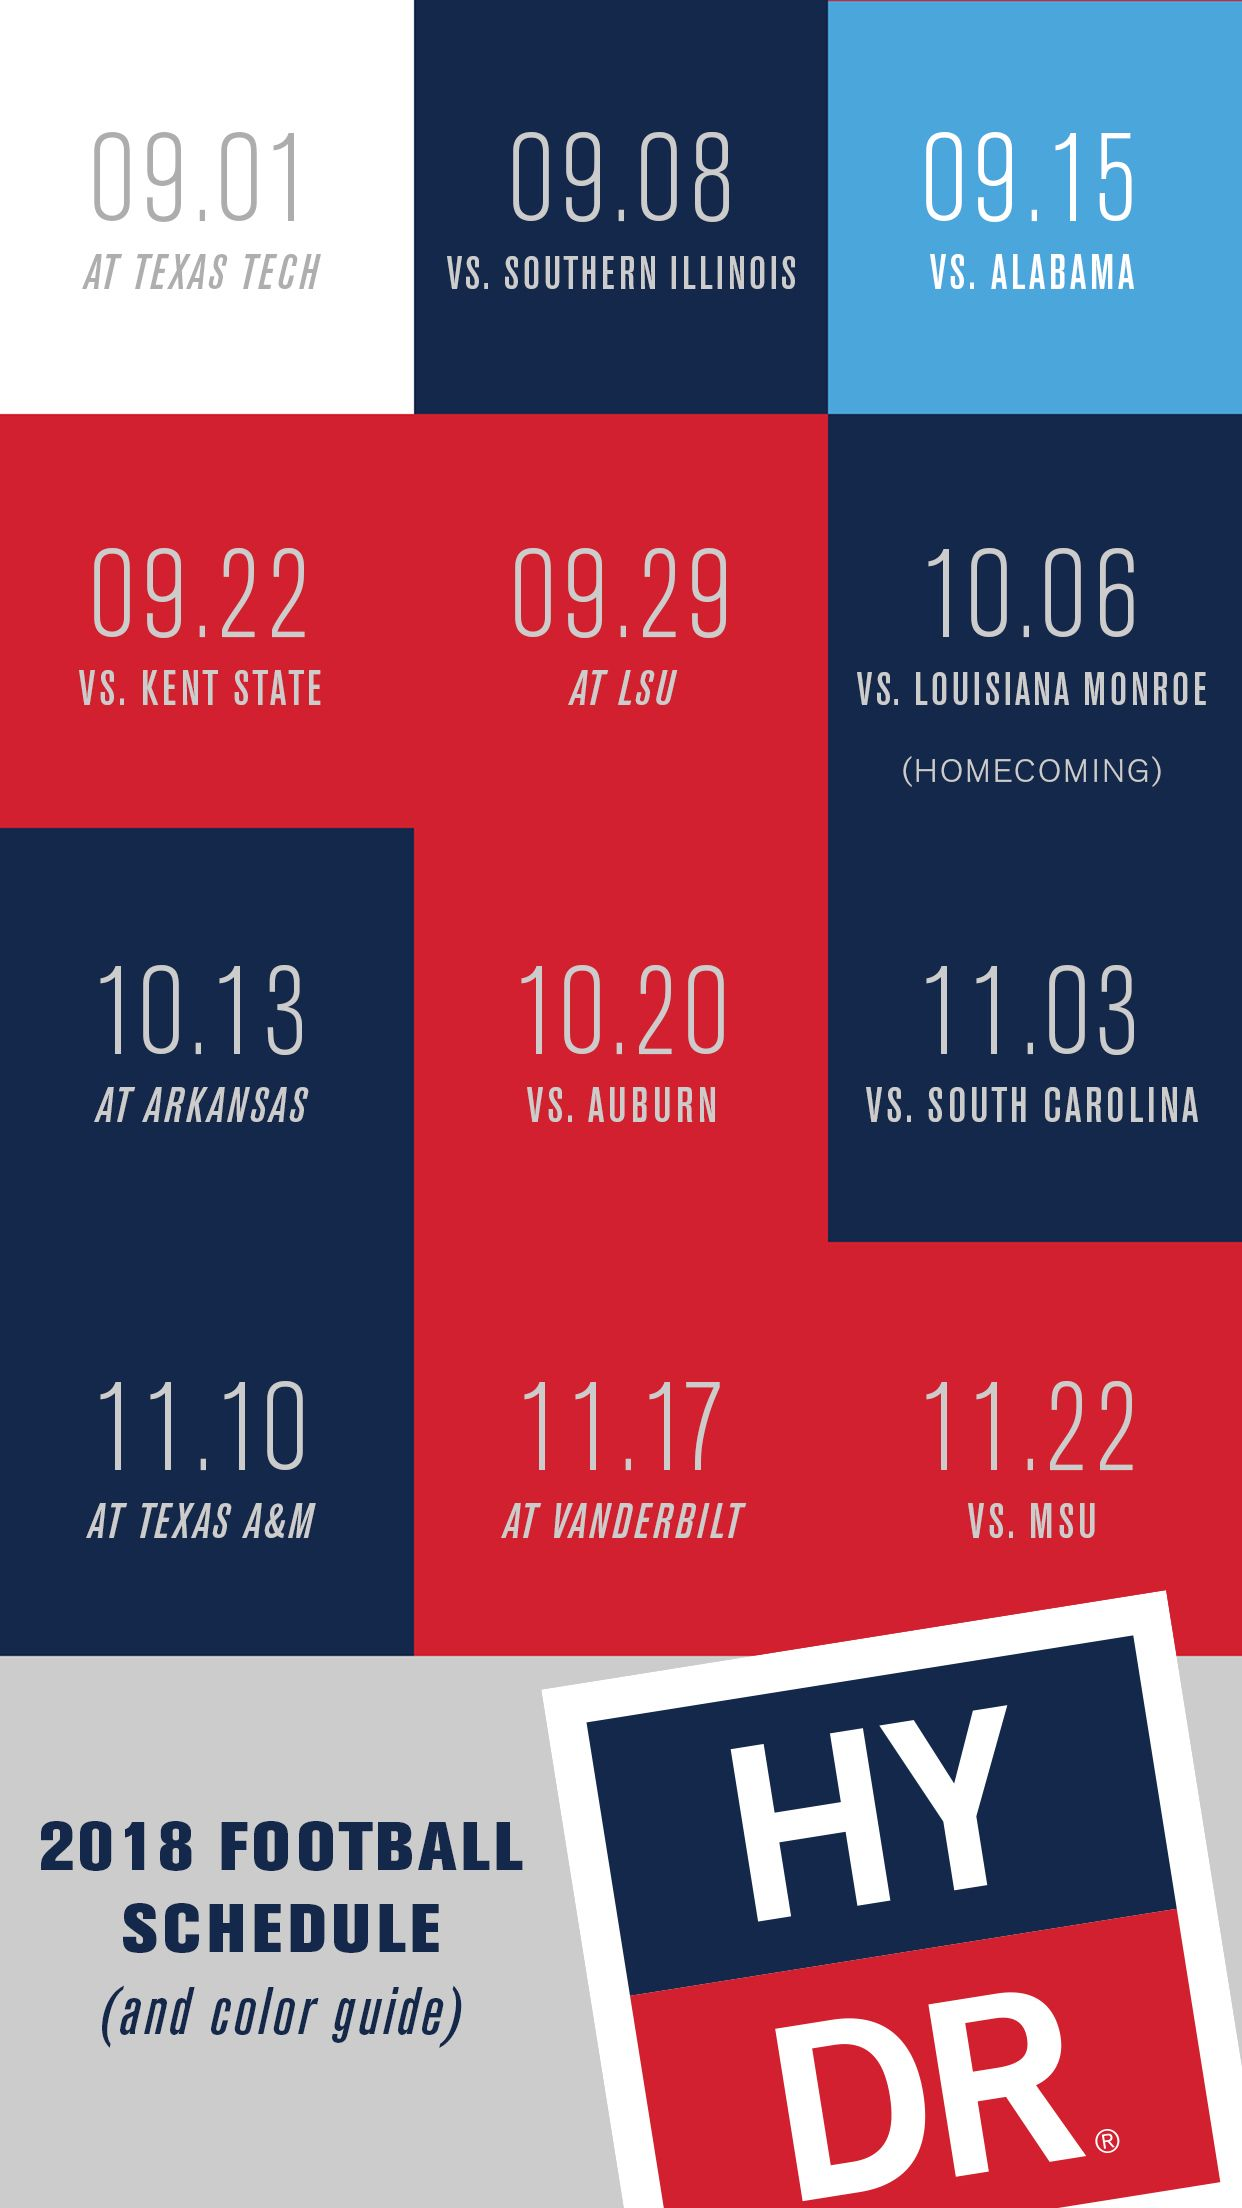 2019 Ole Miss Football Schedule HYDR   Ole Miss Football 2018 Schedule and What to Wear Guide